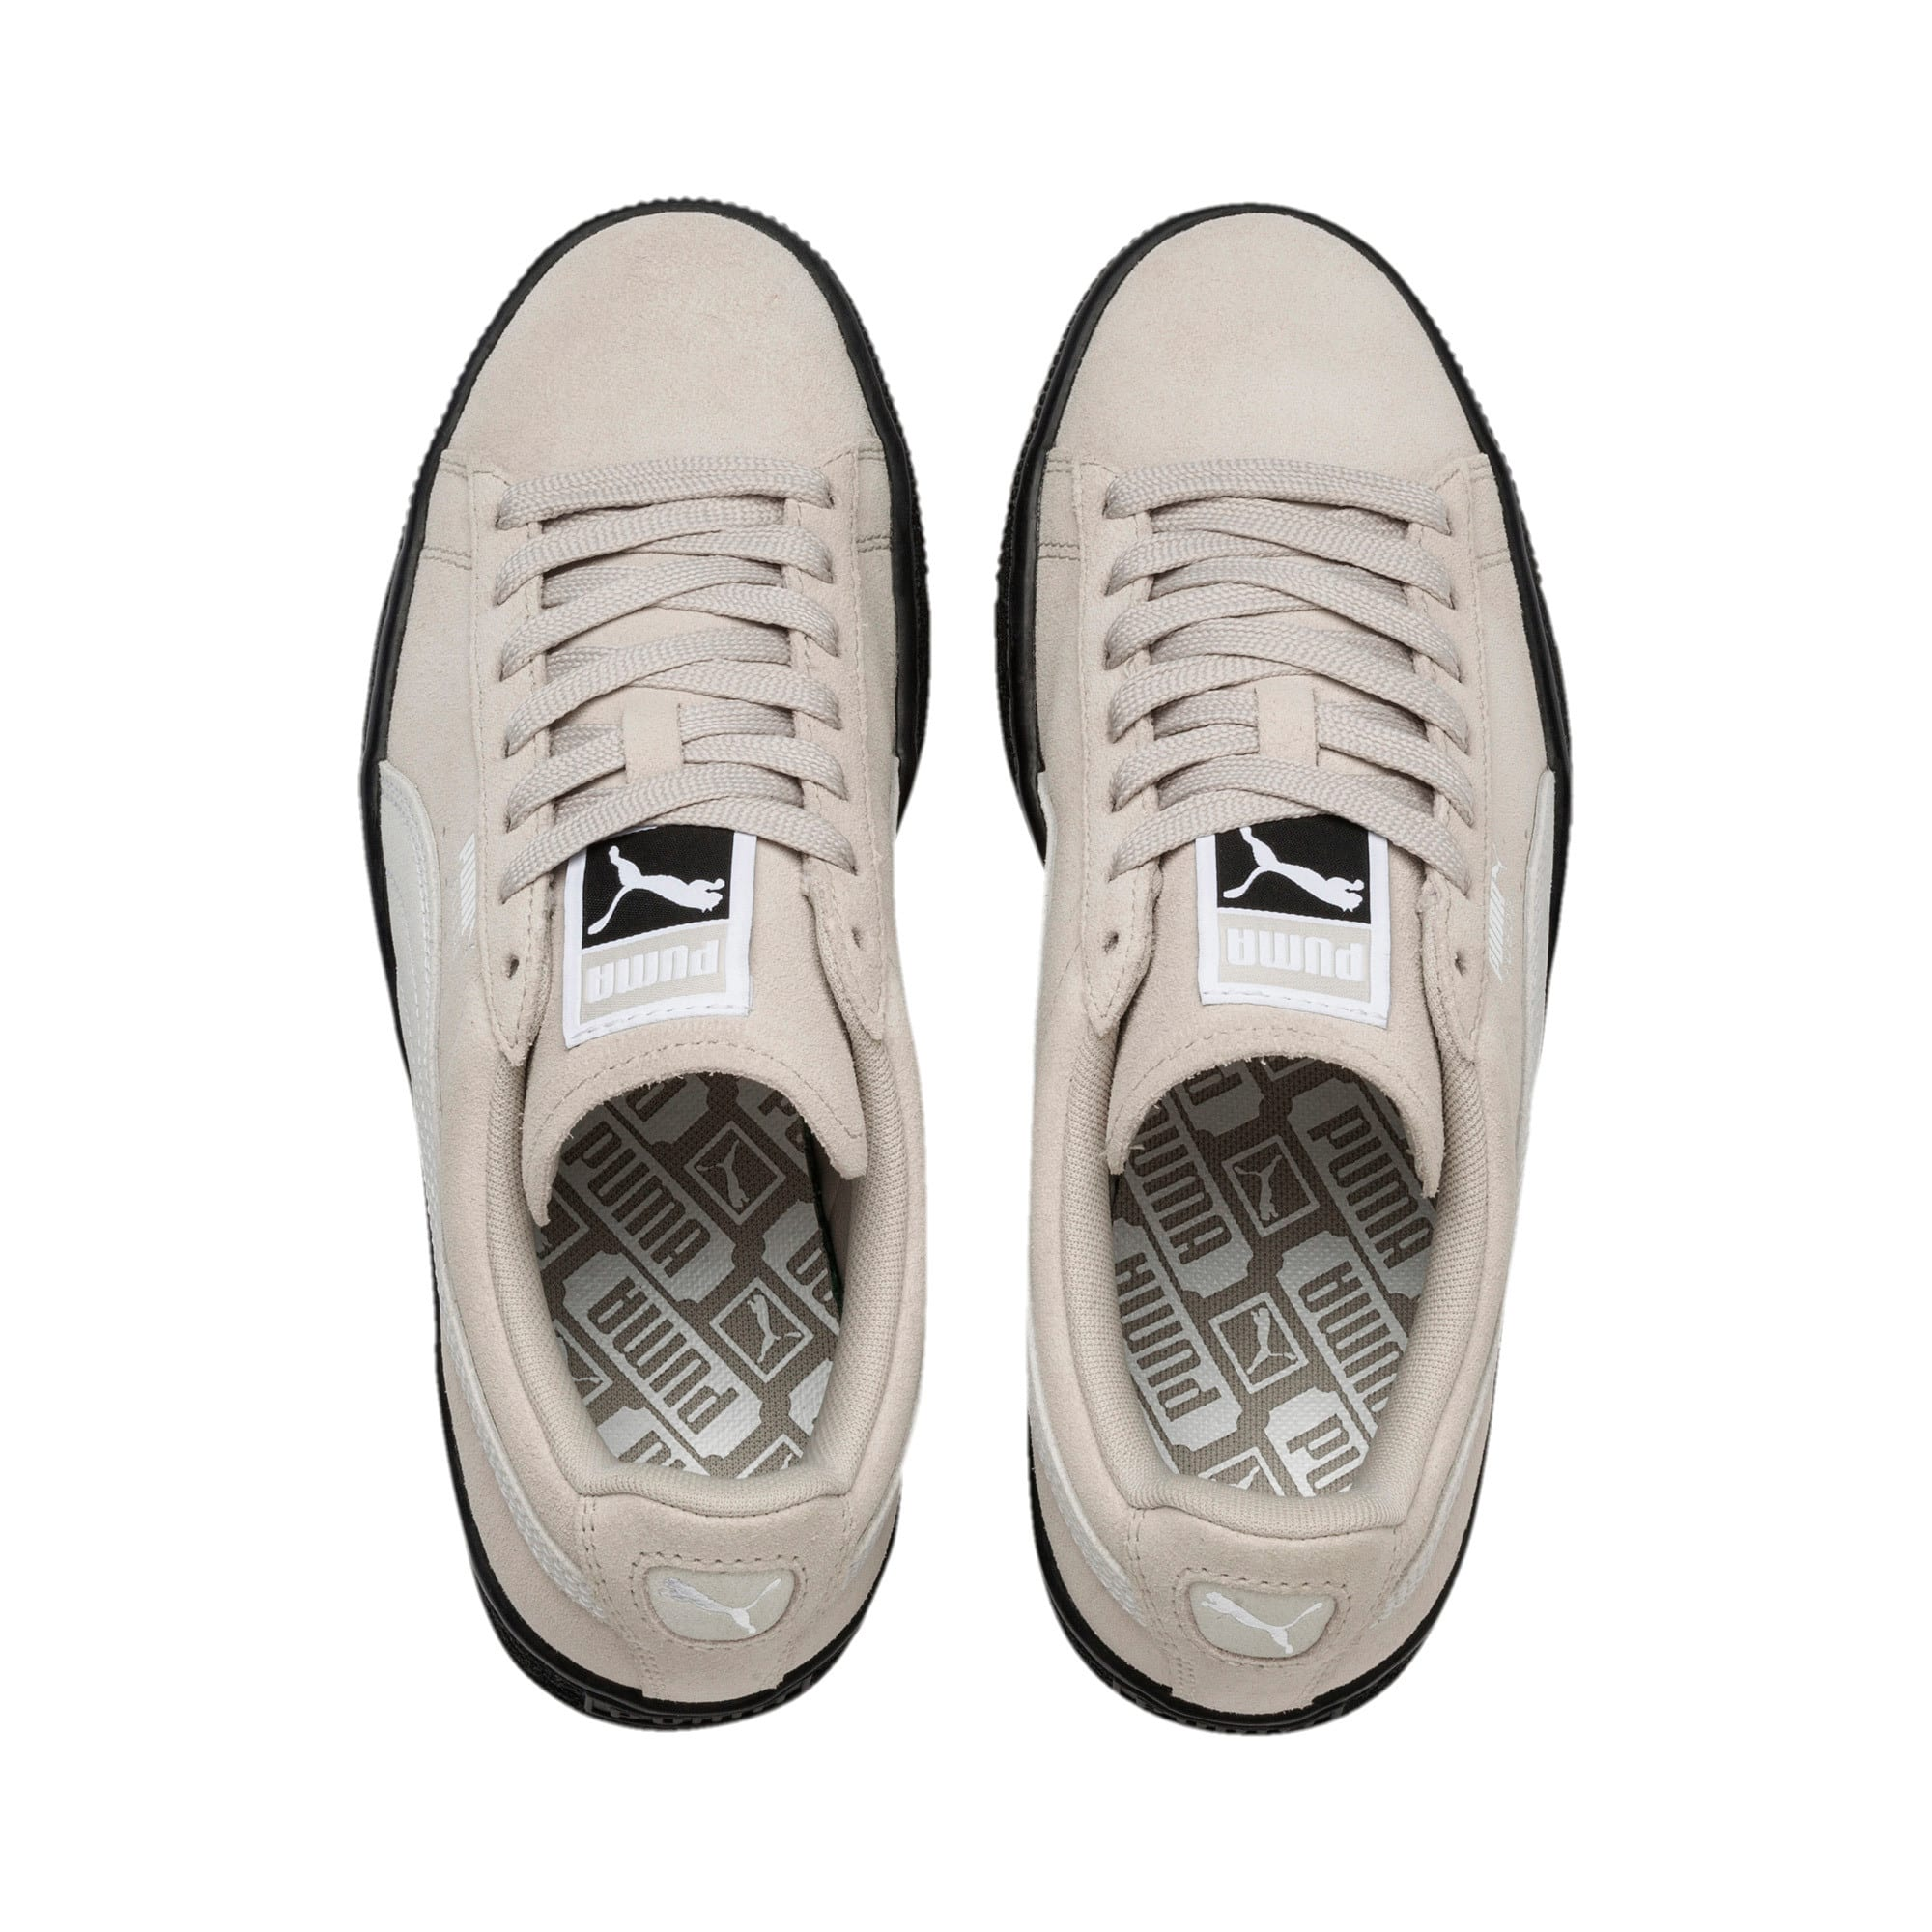 Thumbnail 6 of Suede Classic Women's Sneakers, Silver Gray-Puma White, medium